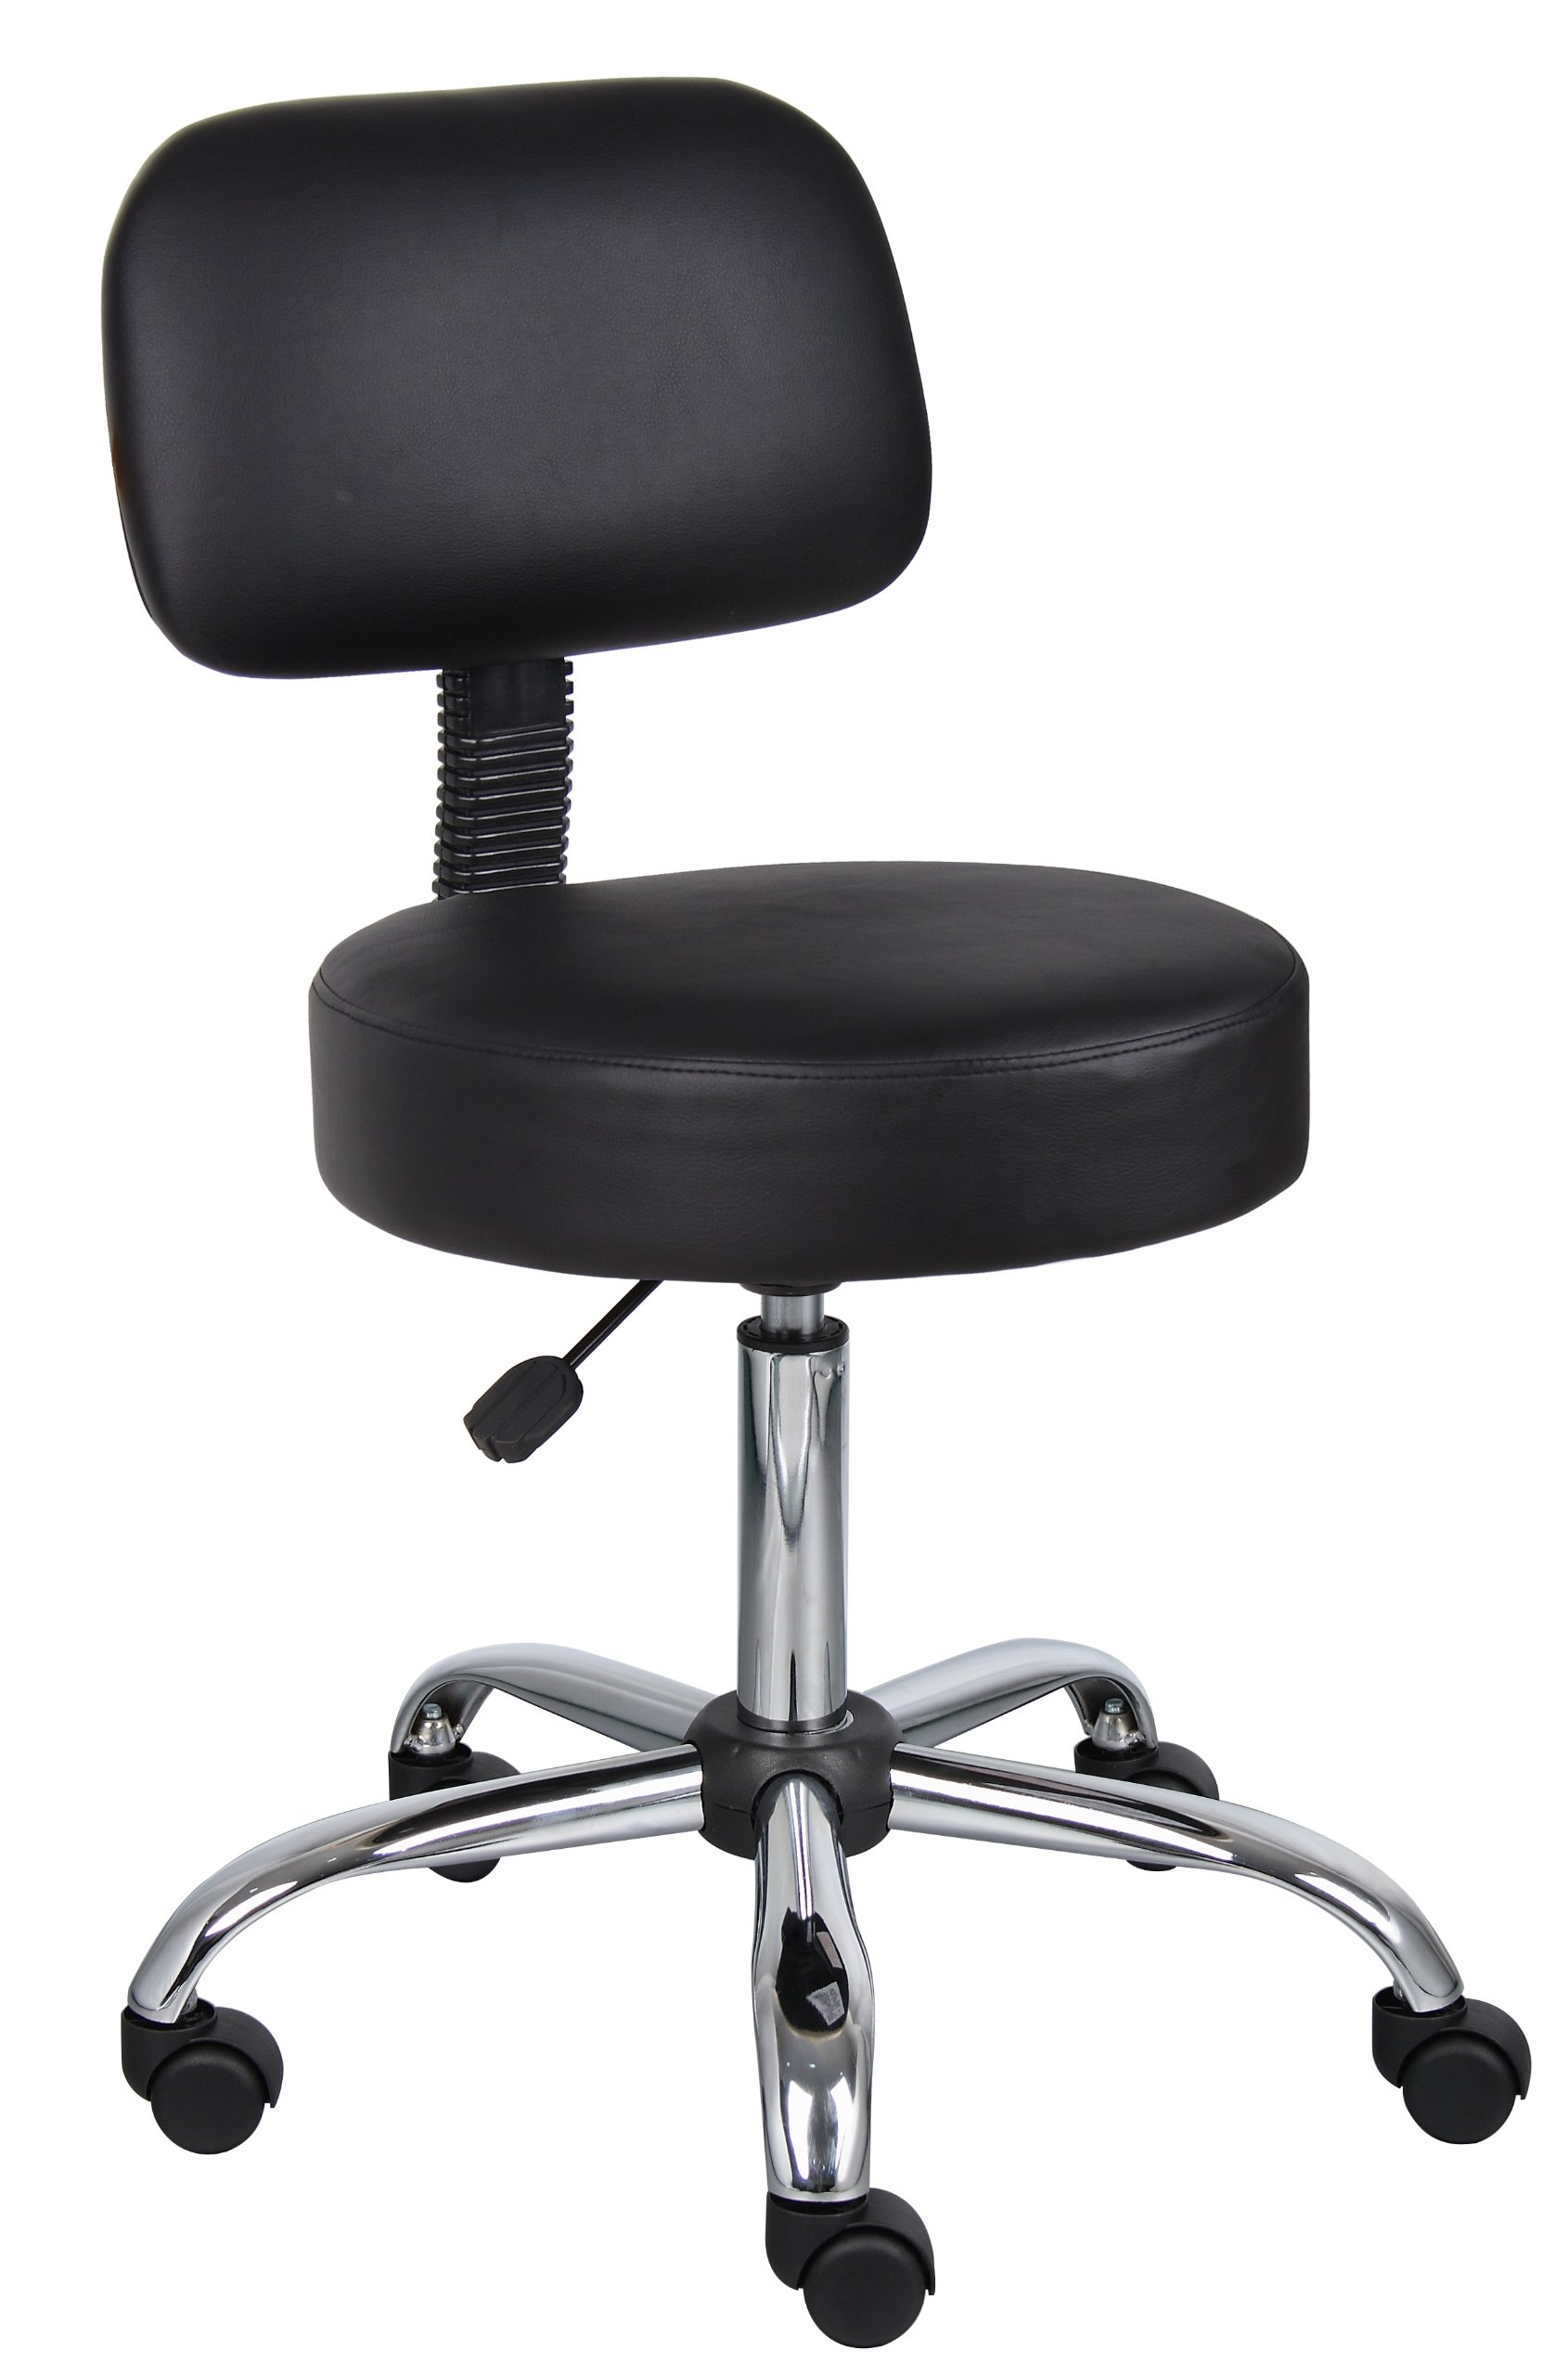 Boss Office Products Be Well Medical Spa Stool with Back in Black by Boss Office Products